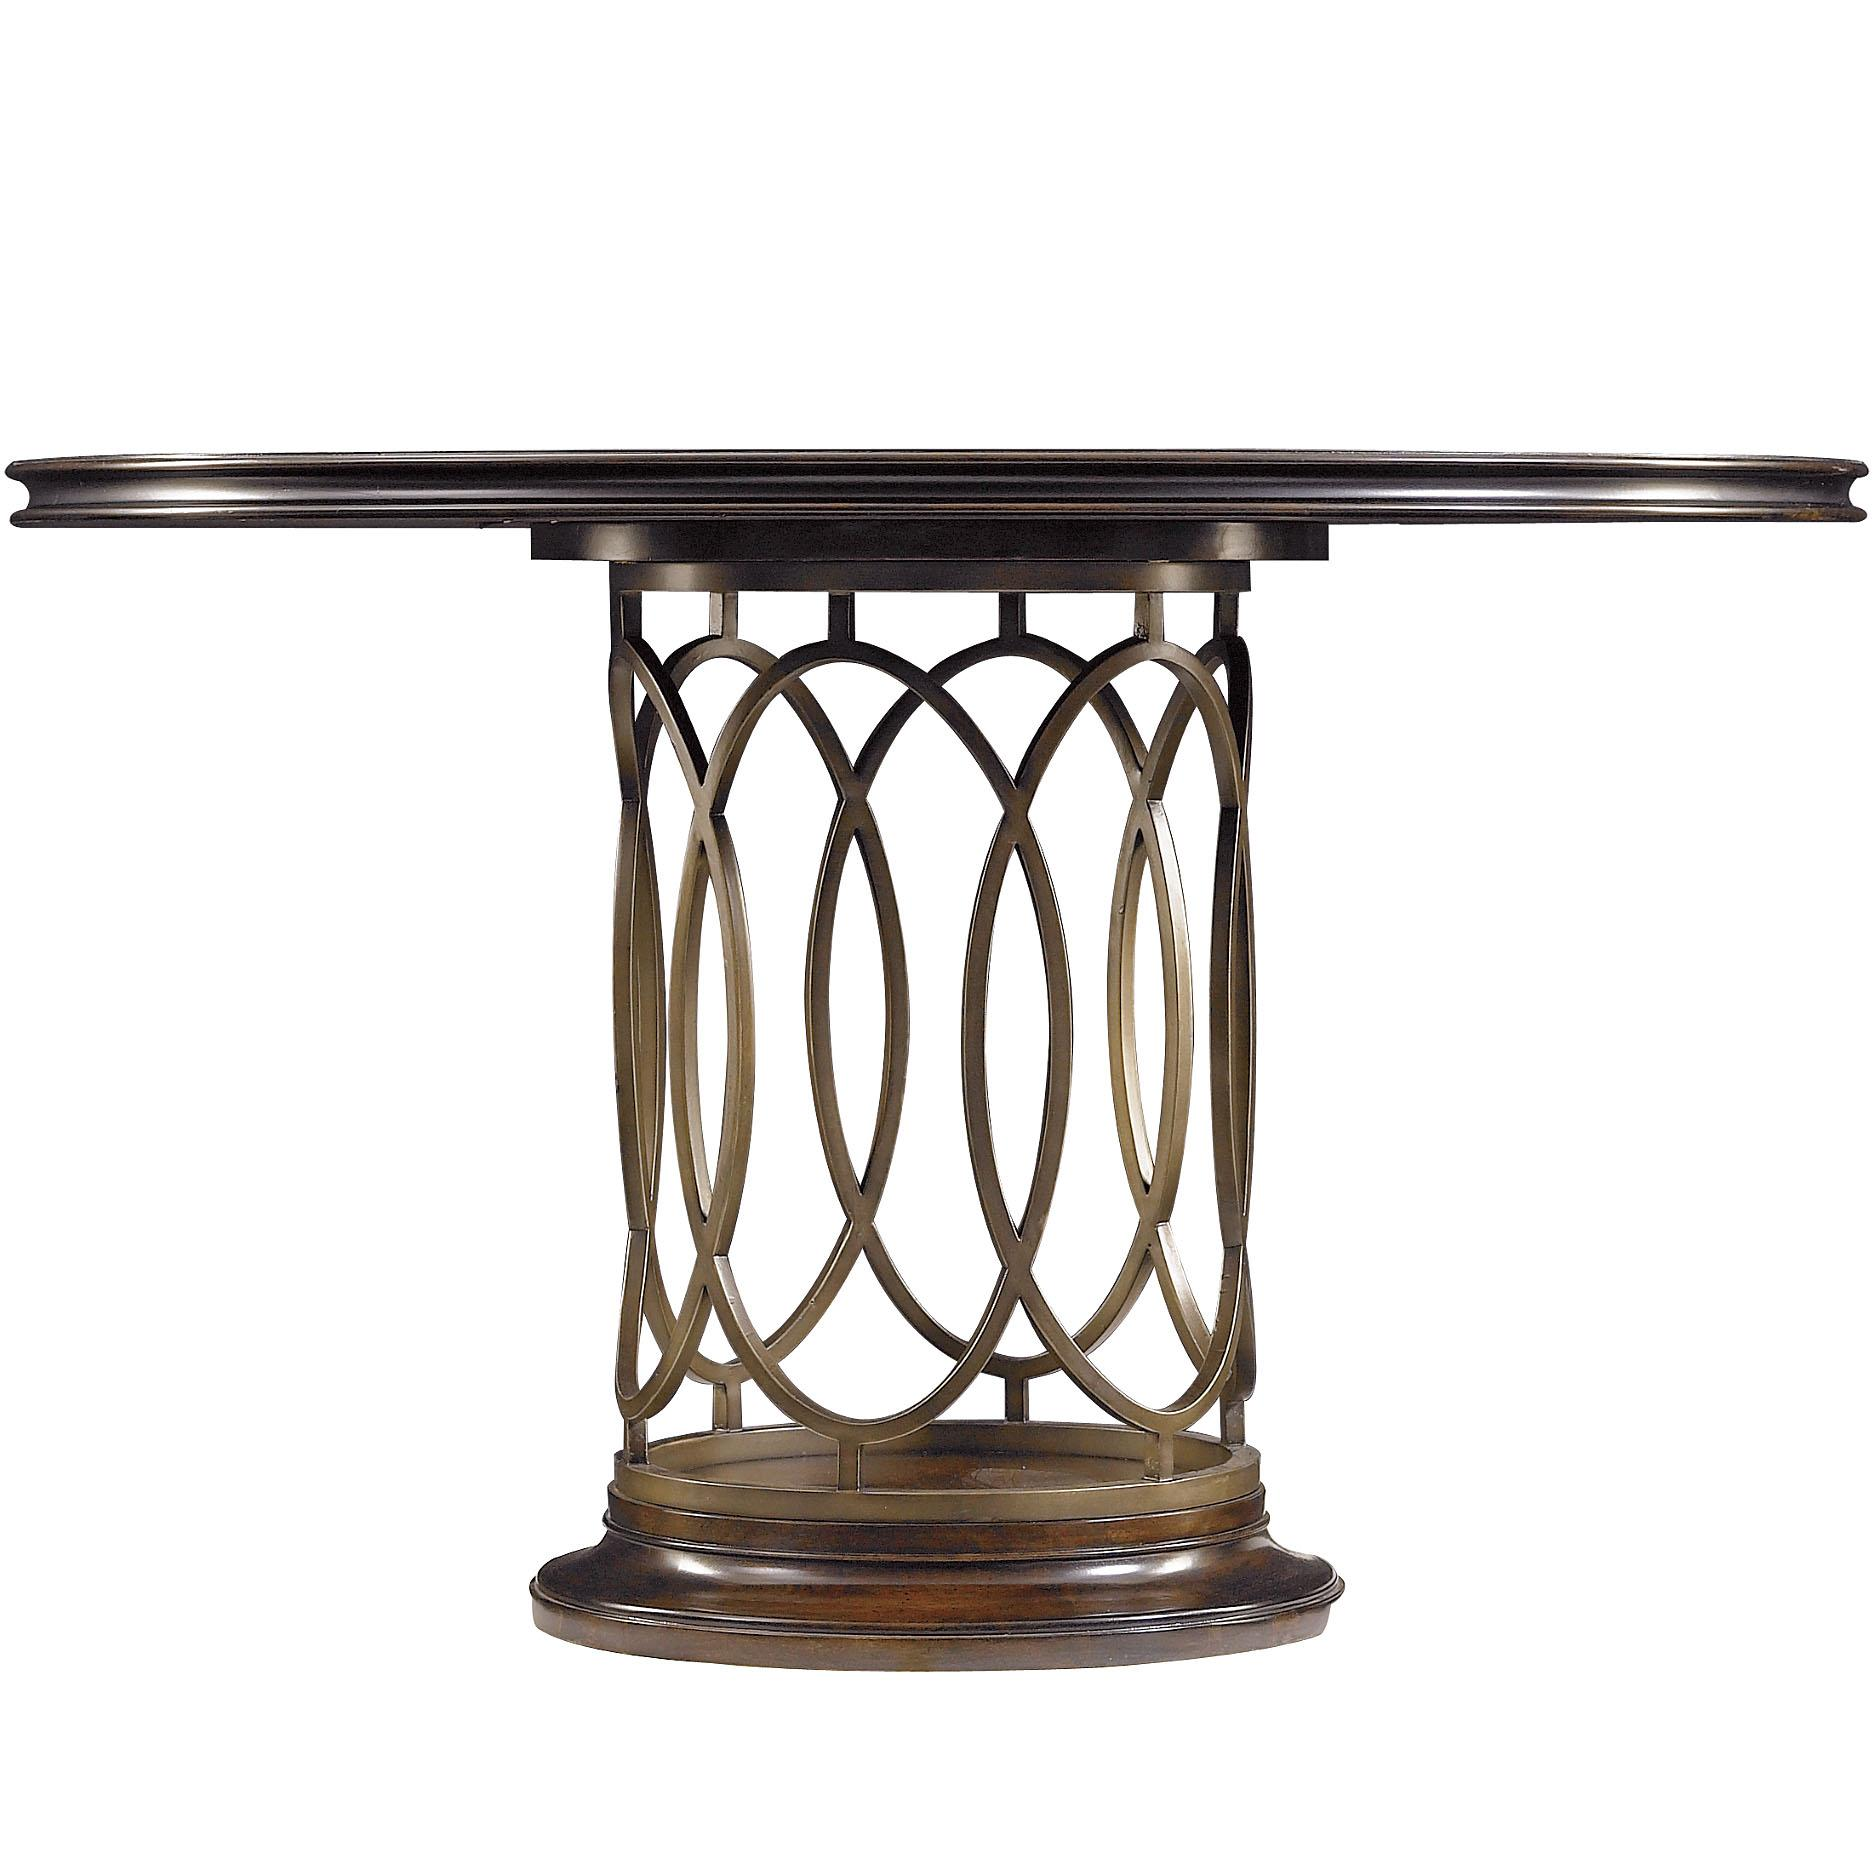 Stanley Furniture Avalon Heights Neo Deco Pedestal Table - Item Number: 193-11-30